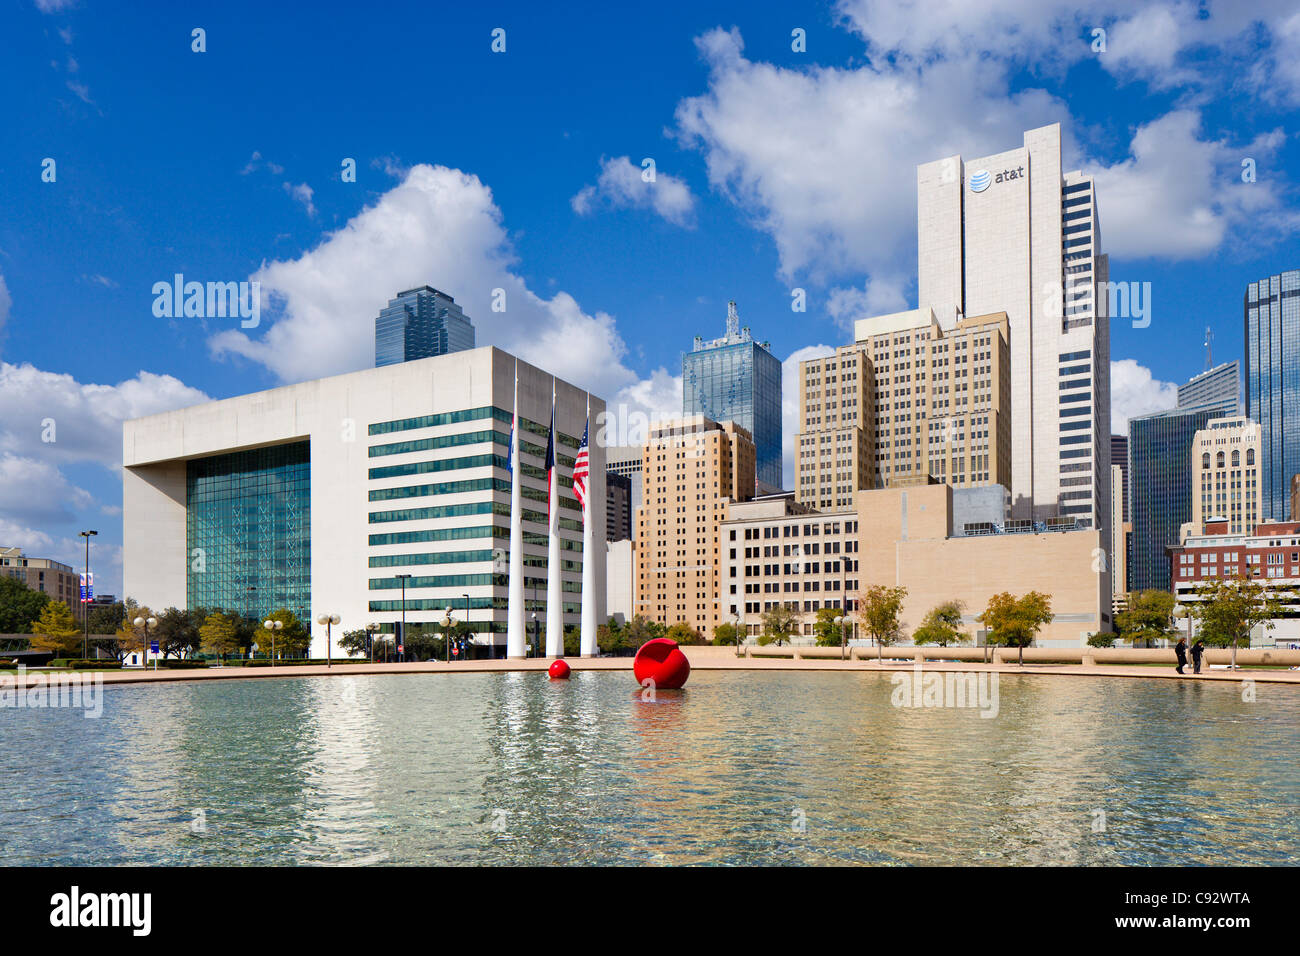 The city skyline from outside City Hall, City Hall Plaza, Dallas, Texas, USA - Stock Image